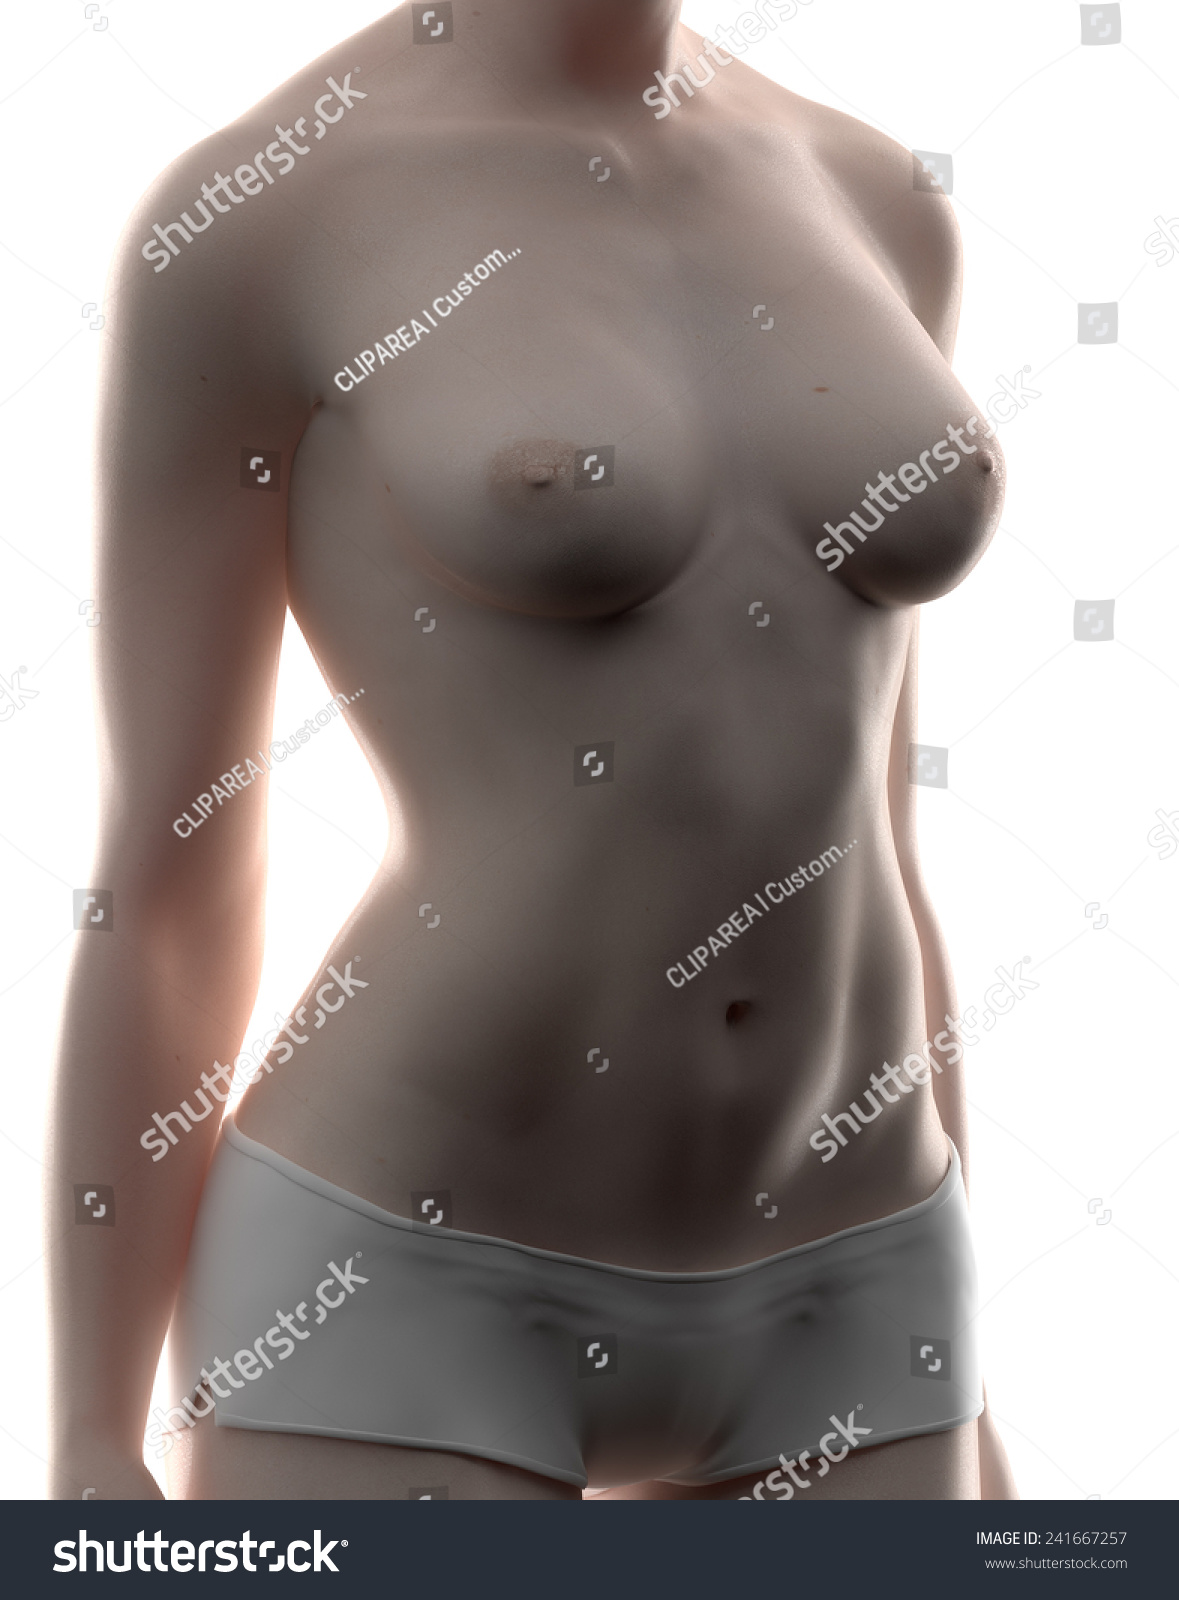 Real View Female Anatomy Pose Stock Illustration 241667257